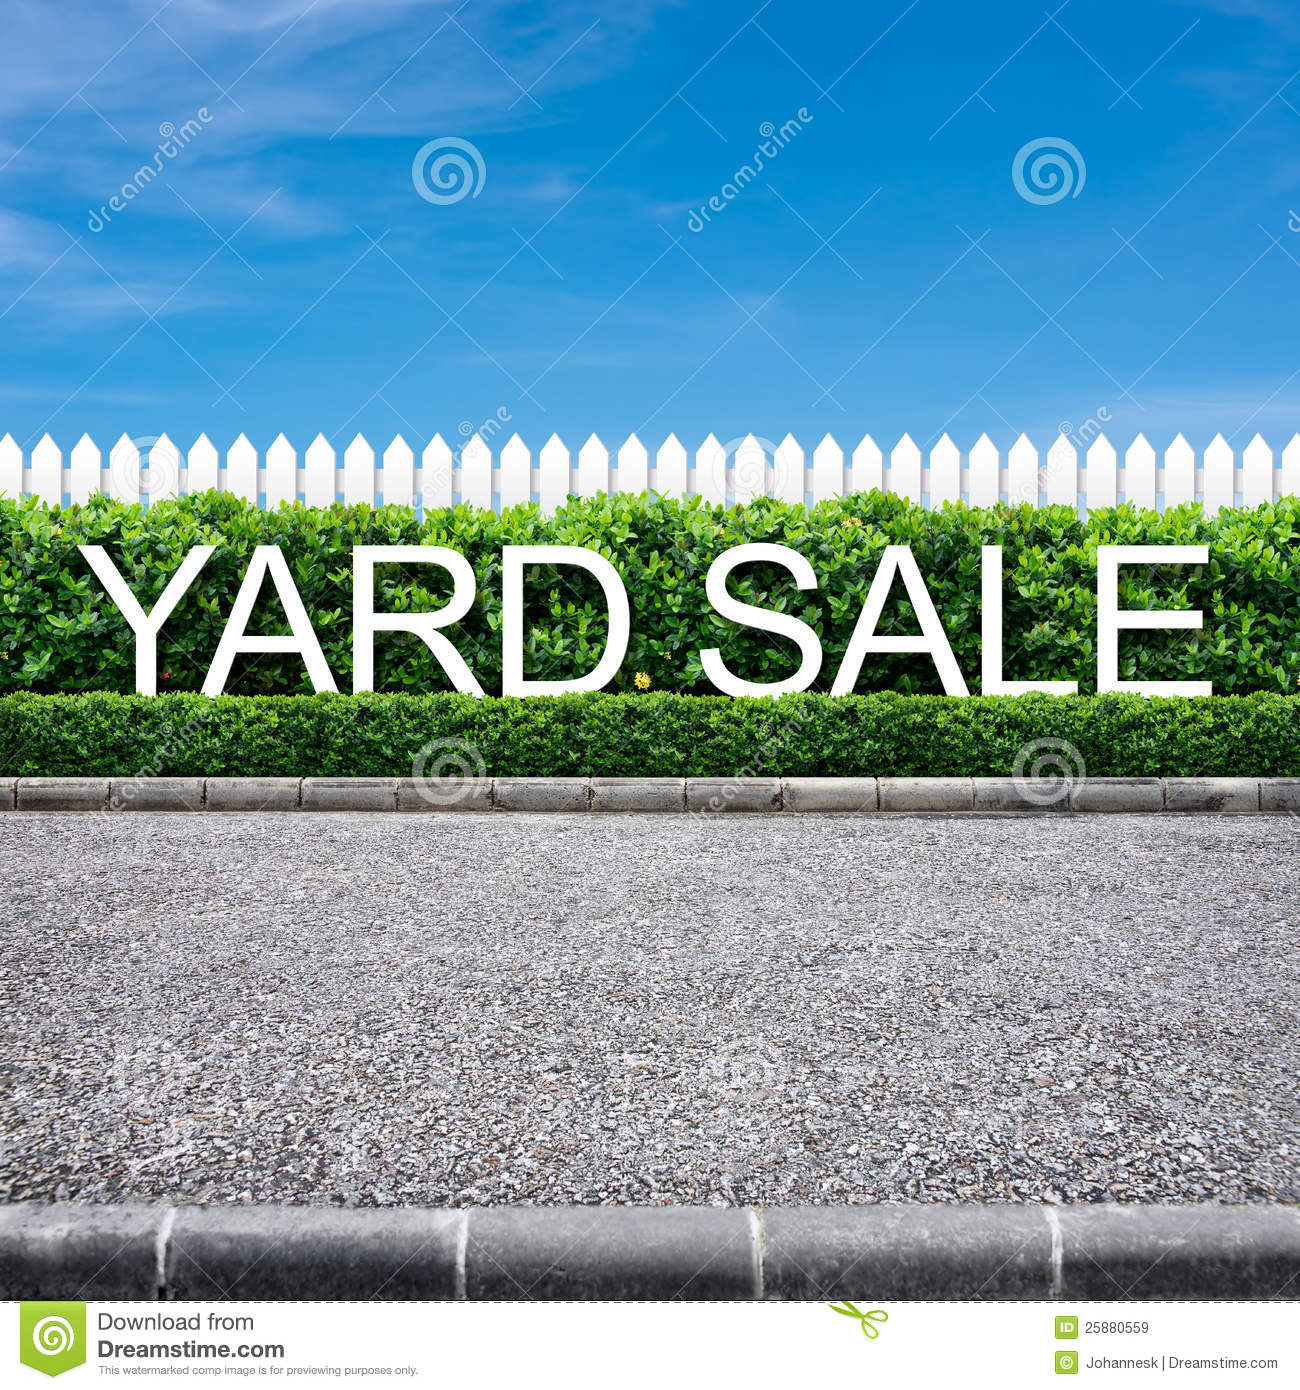 Clip Art Yard Sale Signs